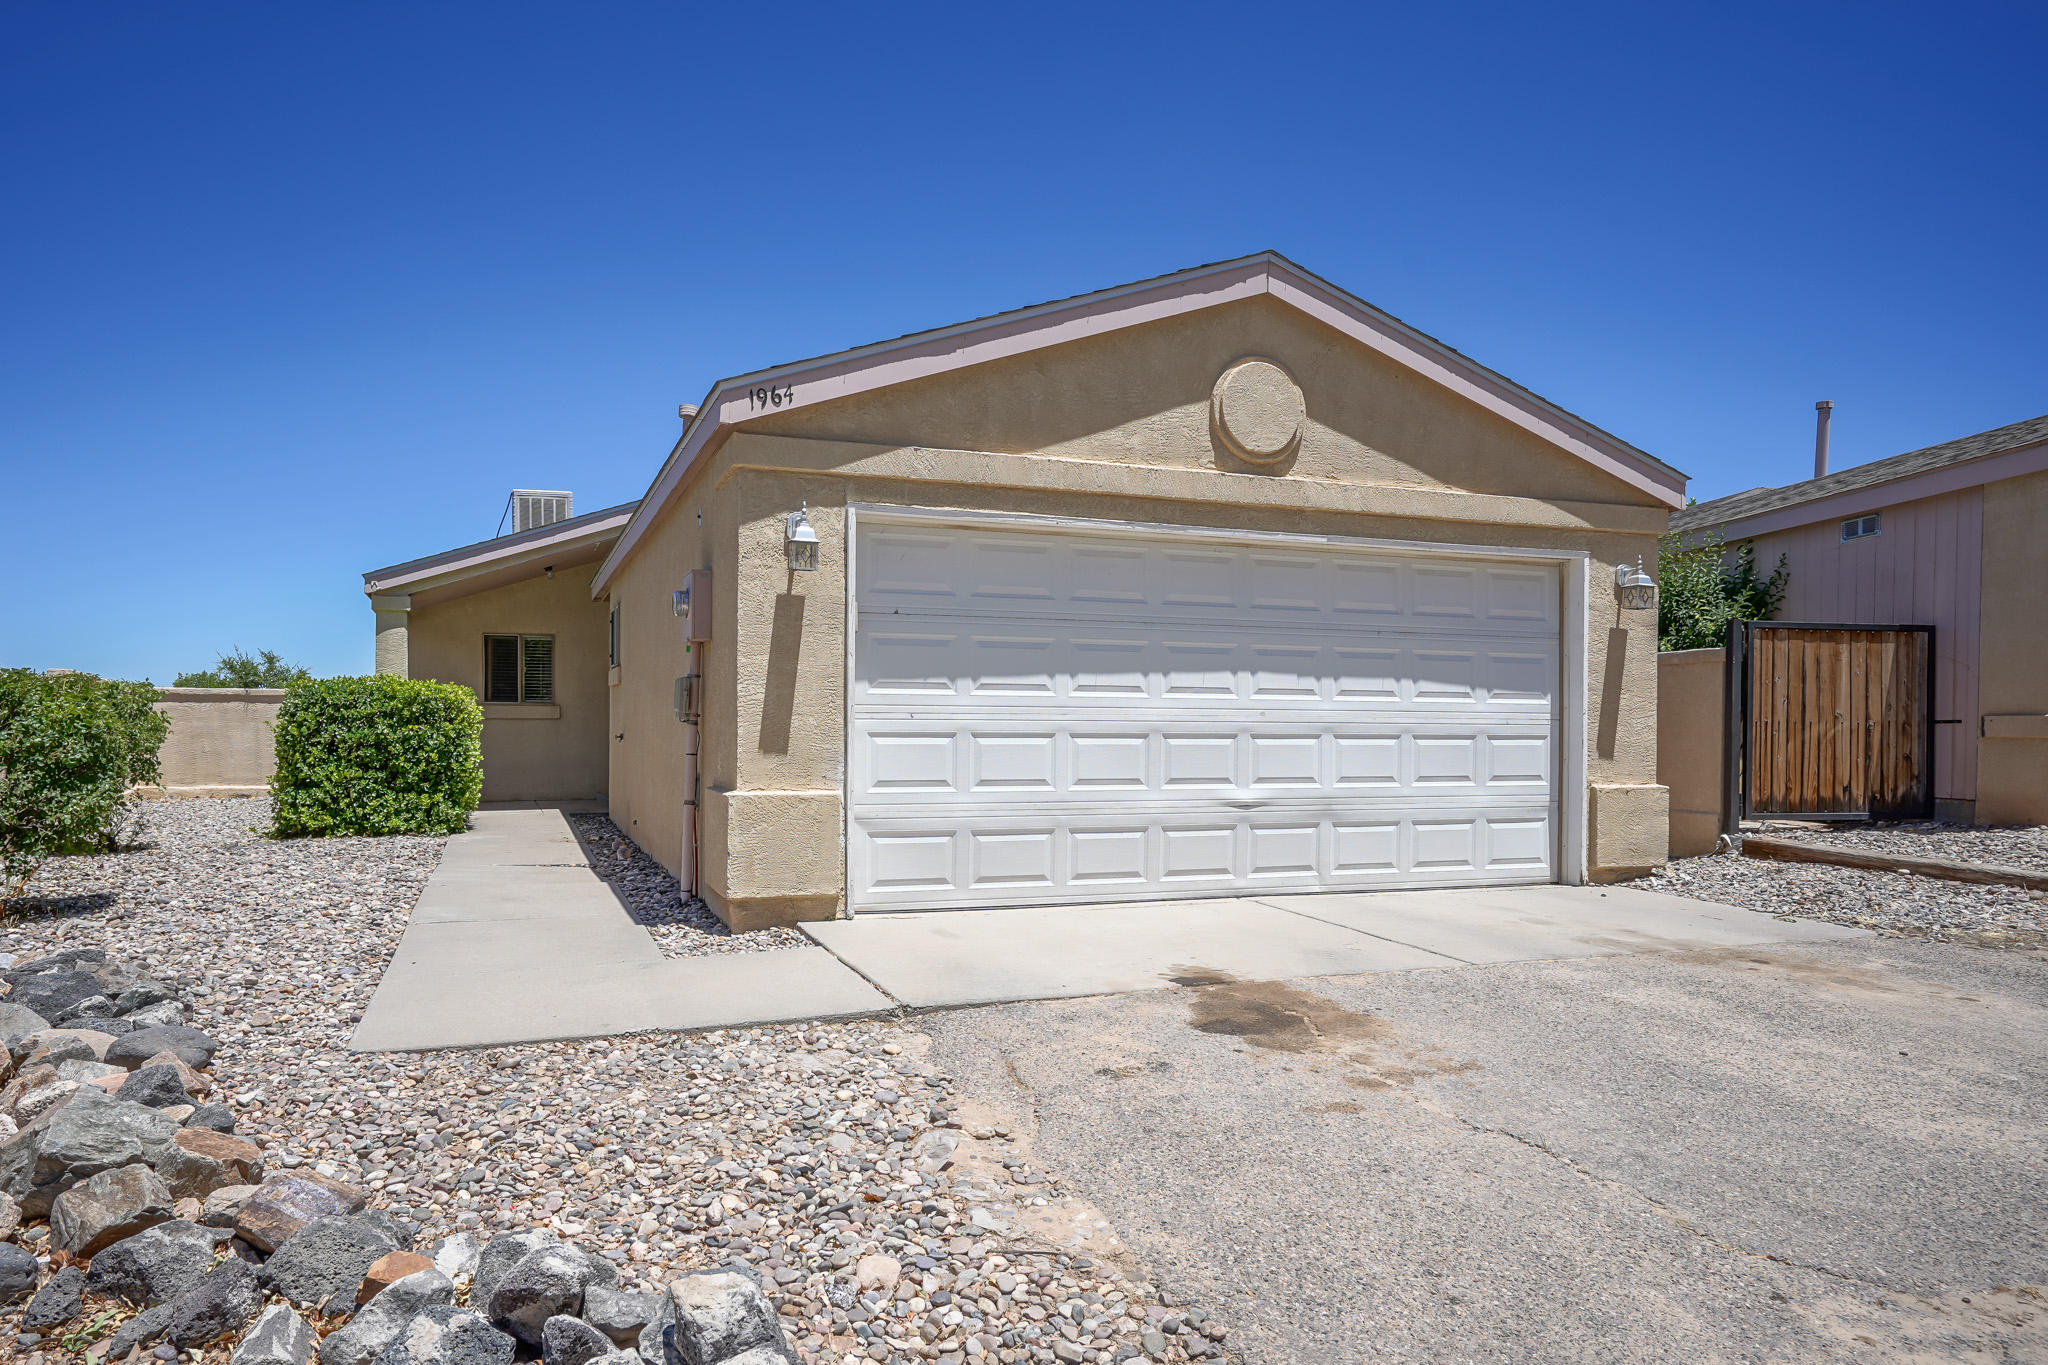 Beautiful North Hills home ready to make your own.  Newer roof, landscaped backyard, updated fixtures, NO POLY and $4000 carpet allowance. Appliances convey AS-IS. Don't miss this opportunity.  Home will sell fast!